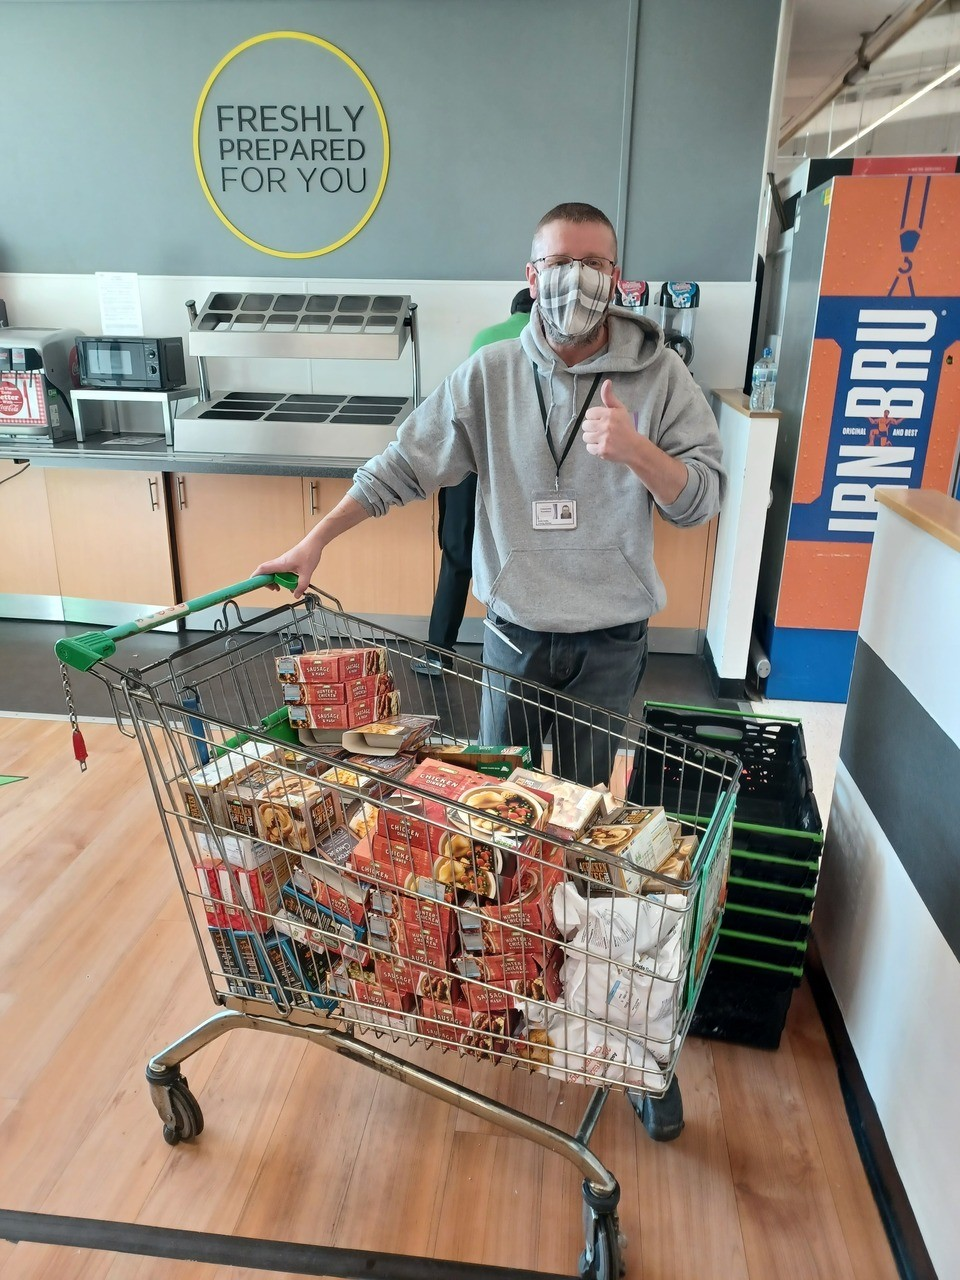 Wdc Food Share picks up grant  | Asda Clydebank